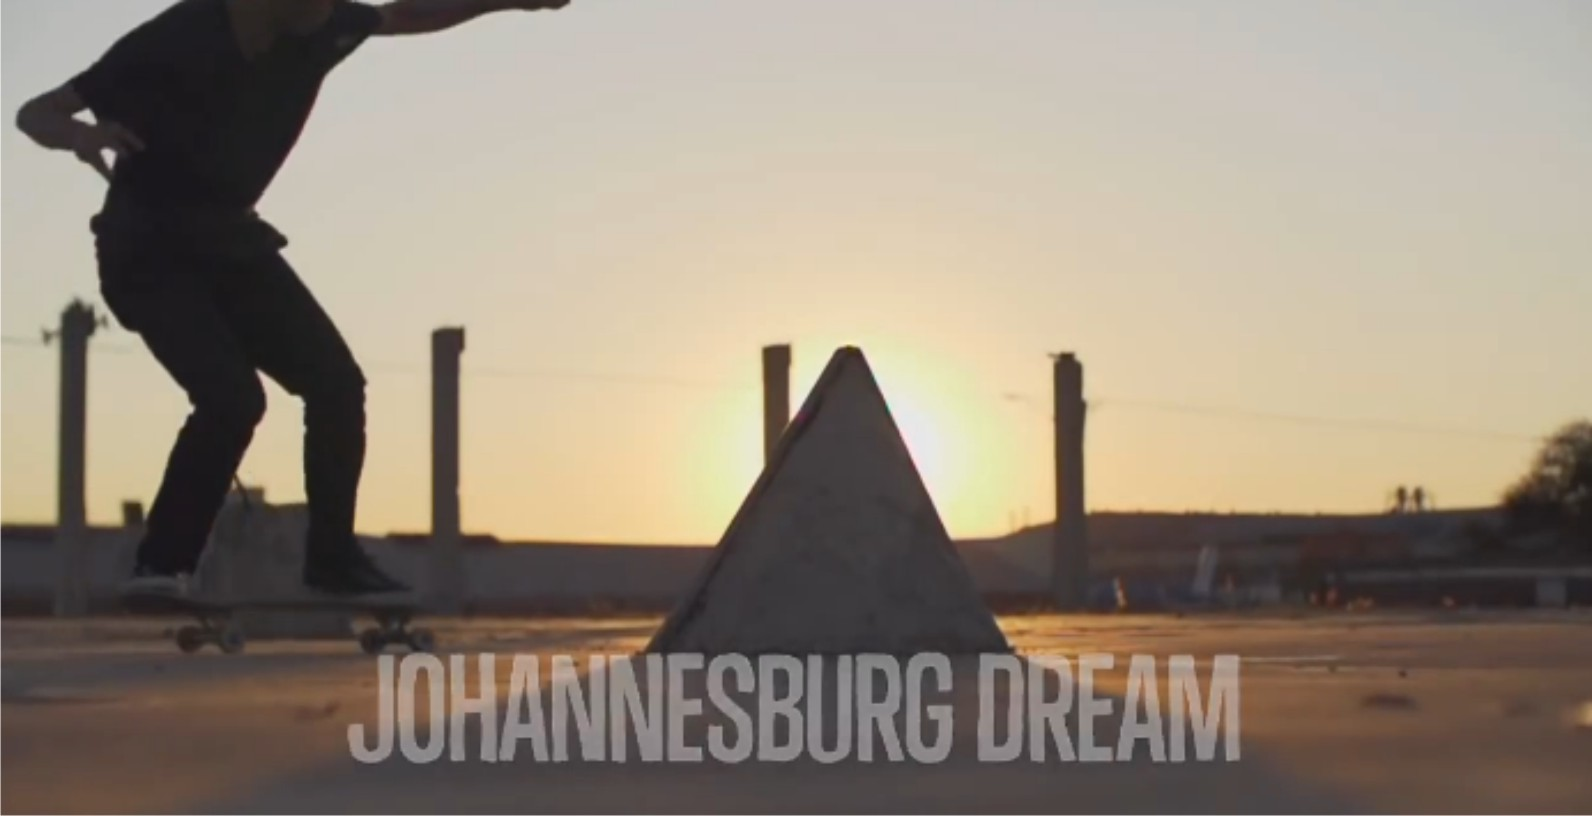 Insane Skateboarding features in the Converse Cons - Johannesburg Dream edit